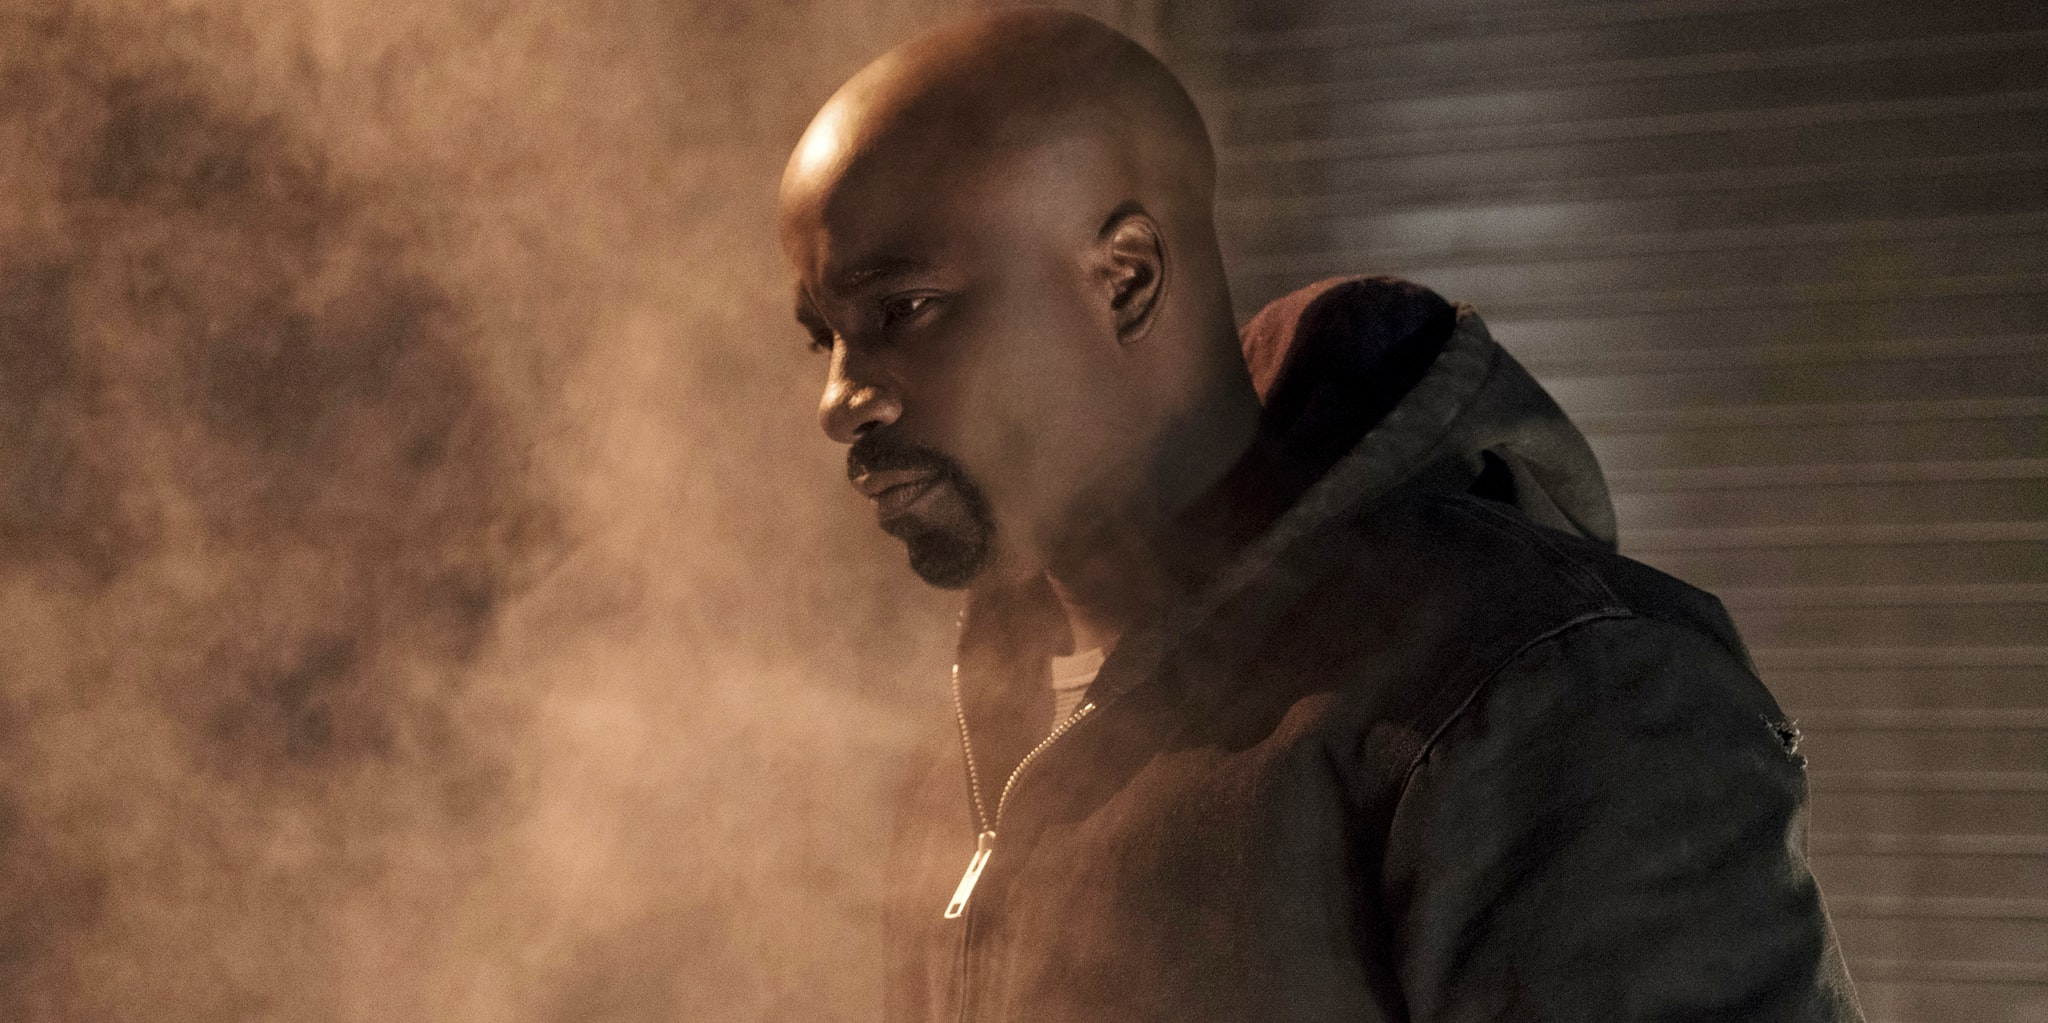 mike-colter-as-luke-cage-in-marvels-luke-cage-on-netflix